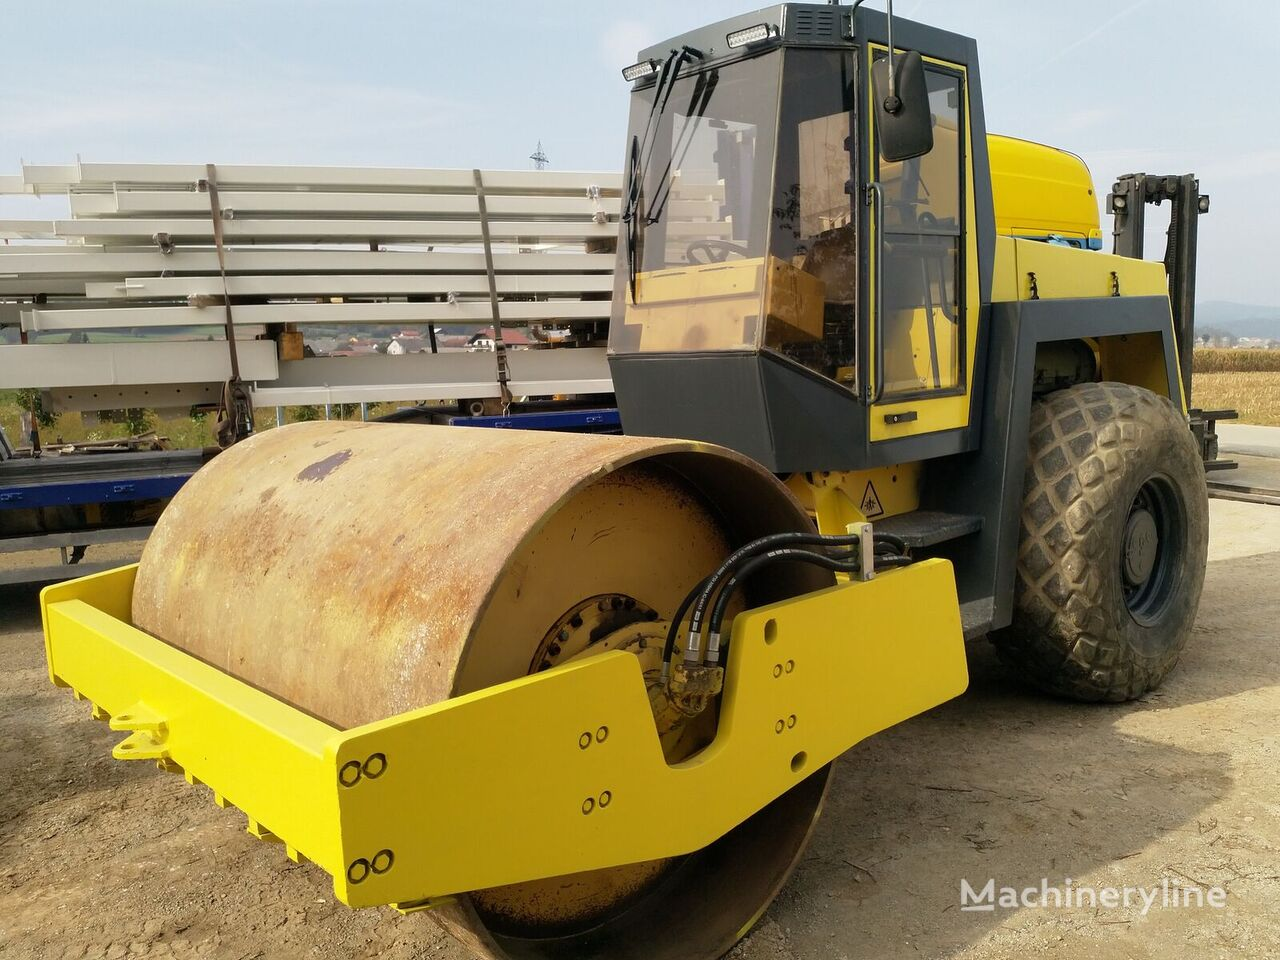 BOMAG Bw213 D-2 single drum compactor